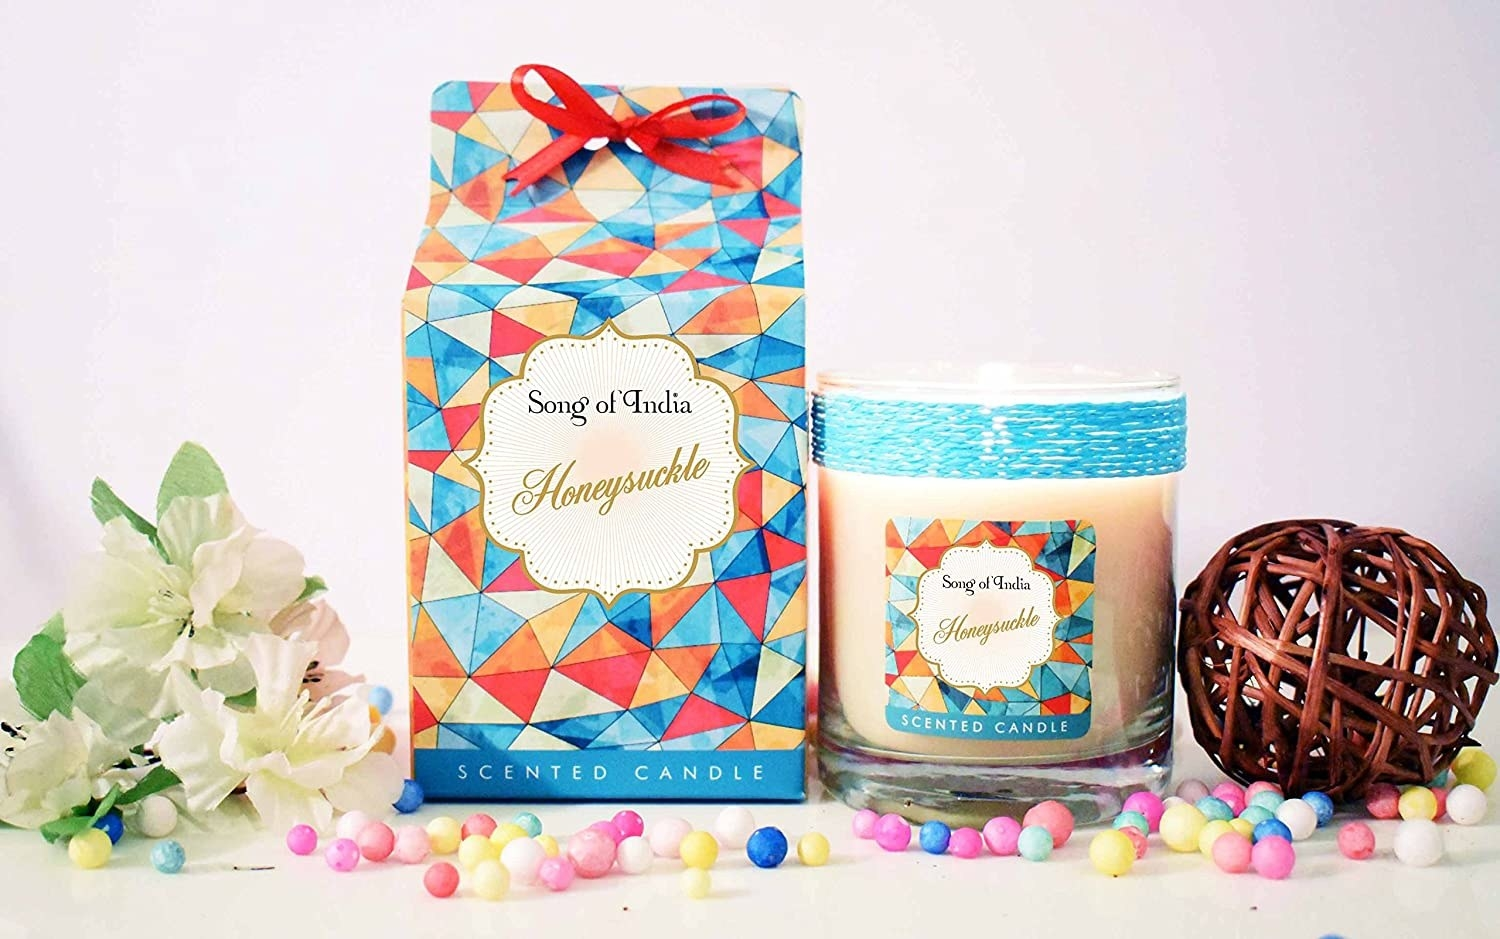 Honeysuckle scented candles with items around it